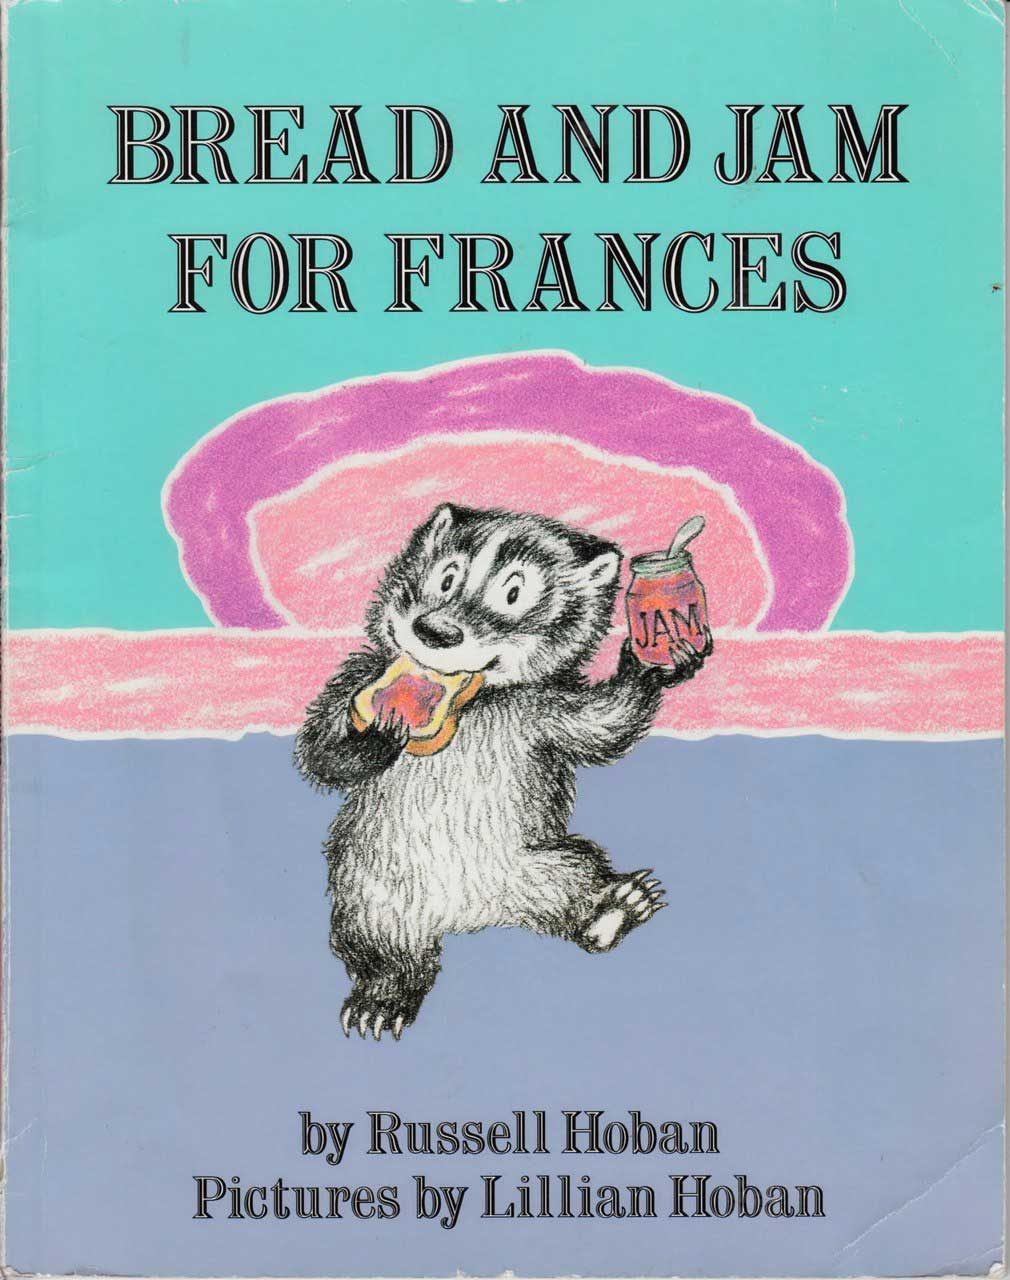 Bread and Jam for Frances, by Russell Hoban, illustrations by Lillian Hoban.                                                                                                                            An extremely picky eater expands her diet beyond bread and jam and discovers the pleasure of a well-rounded meal.                                                                                             Buy now: Bread and Jam for Frances